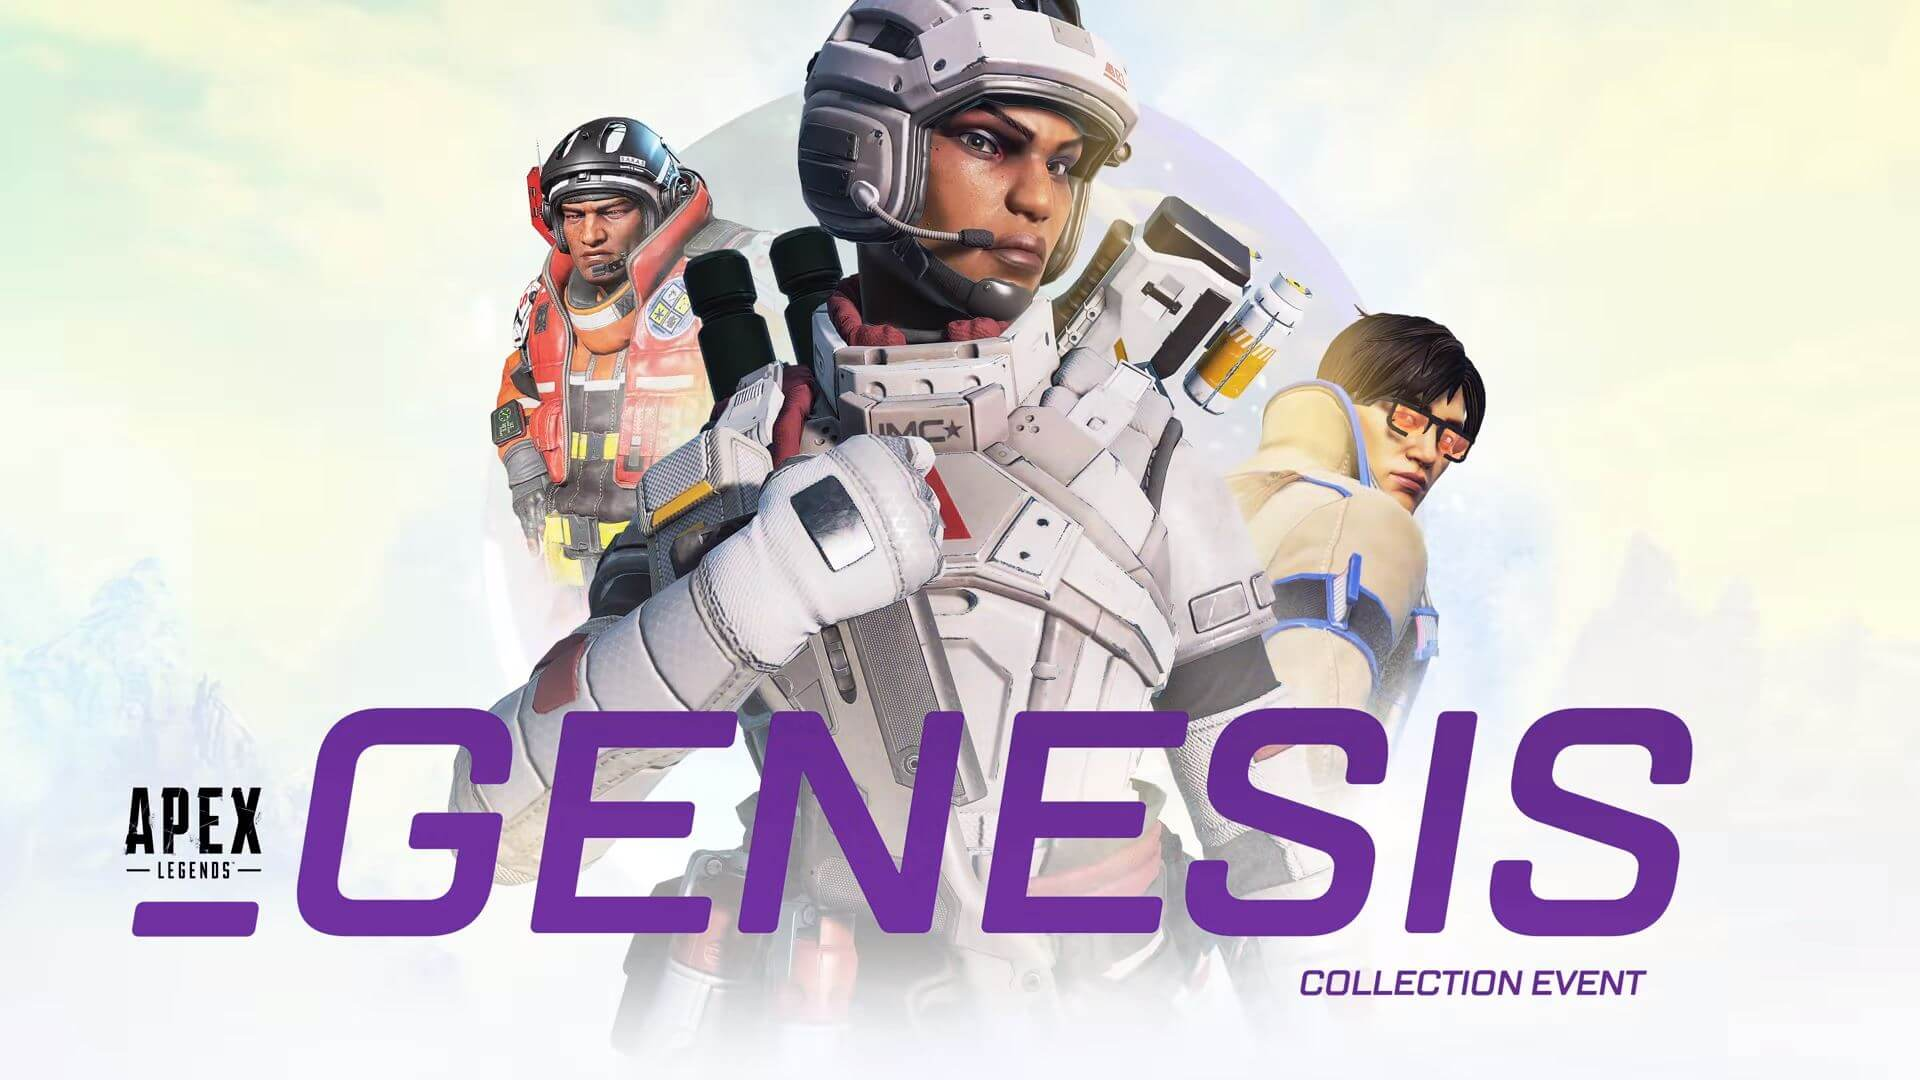 apex-legends-patch-notes-for-genesis-collection-event-–-og-king's-canyon,-skull-town-returns